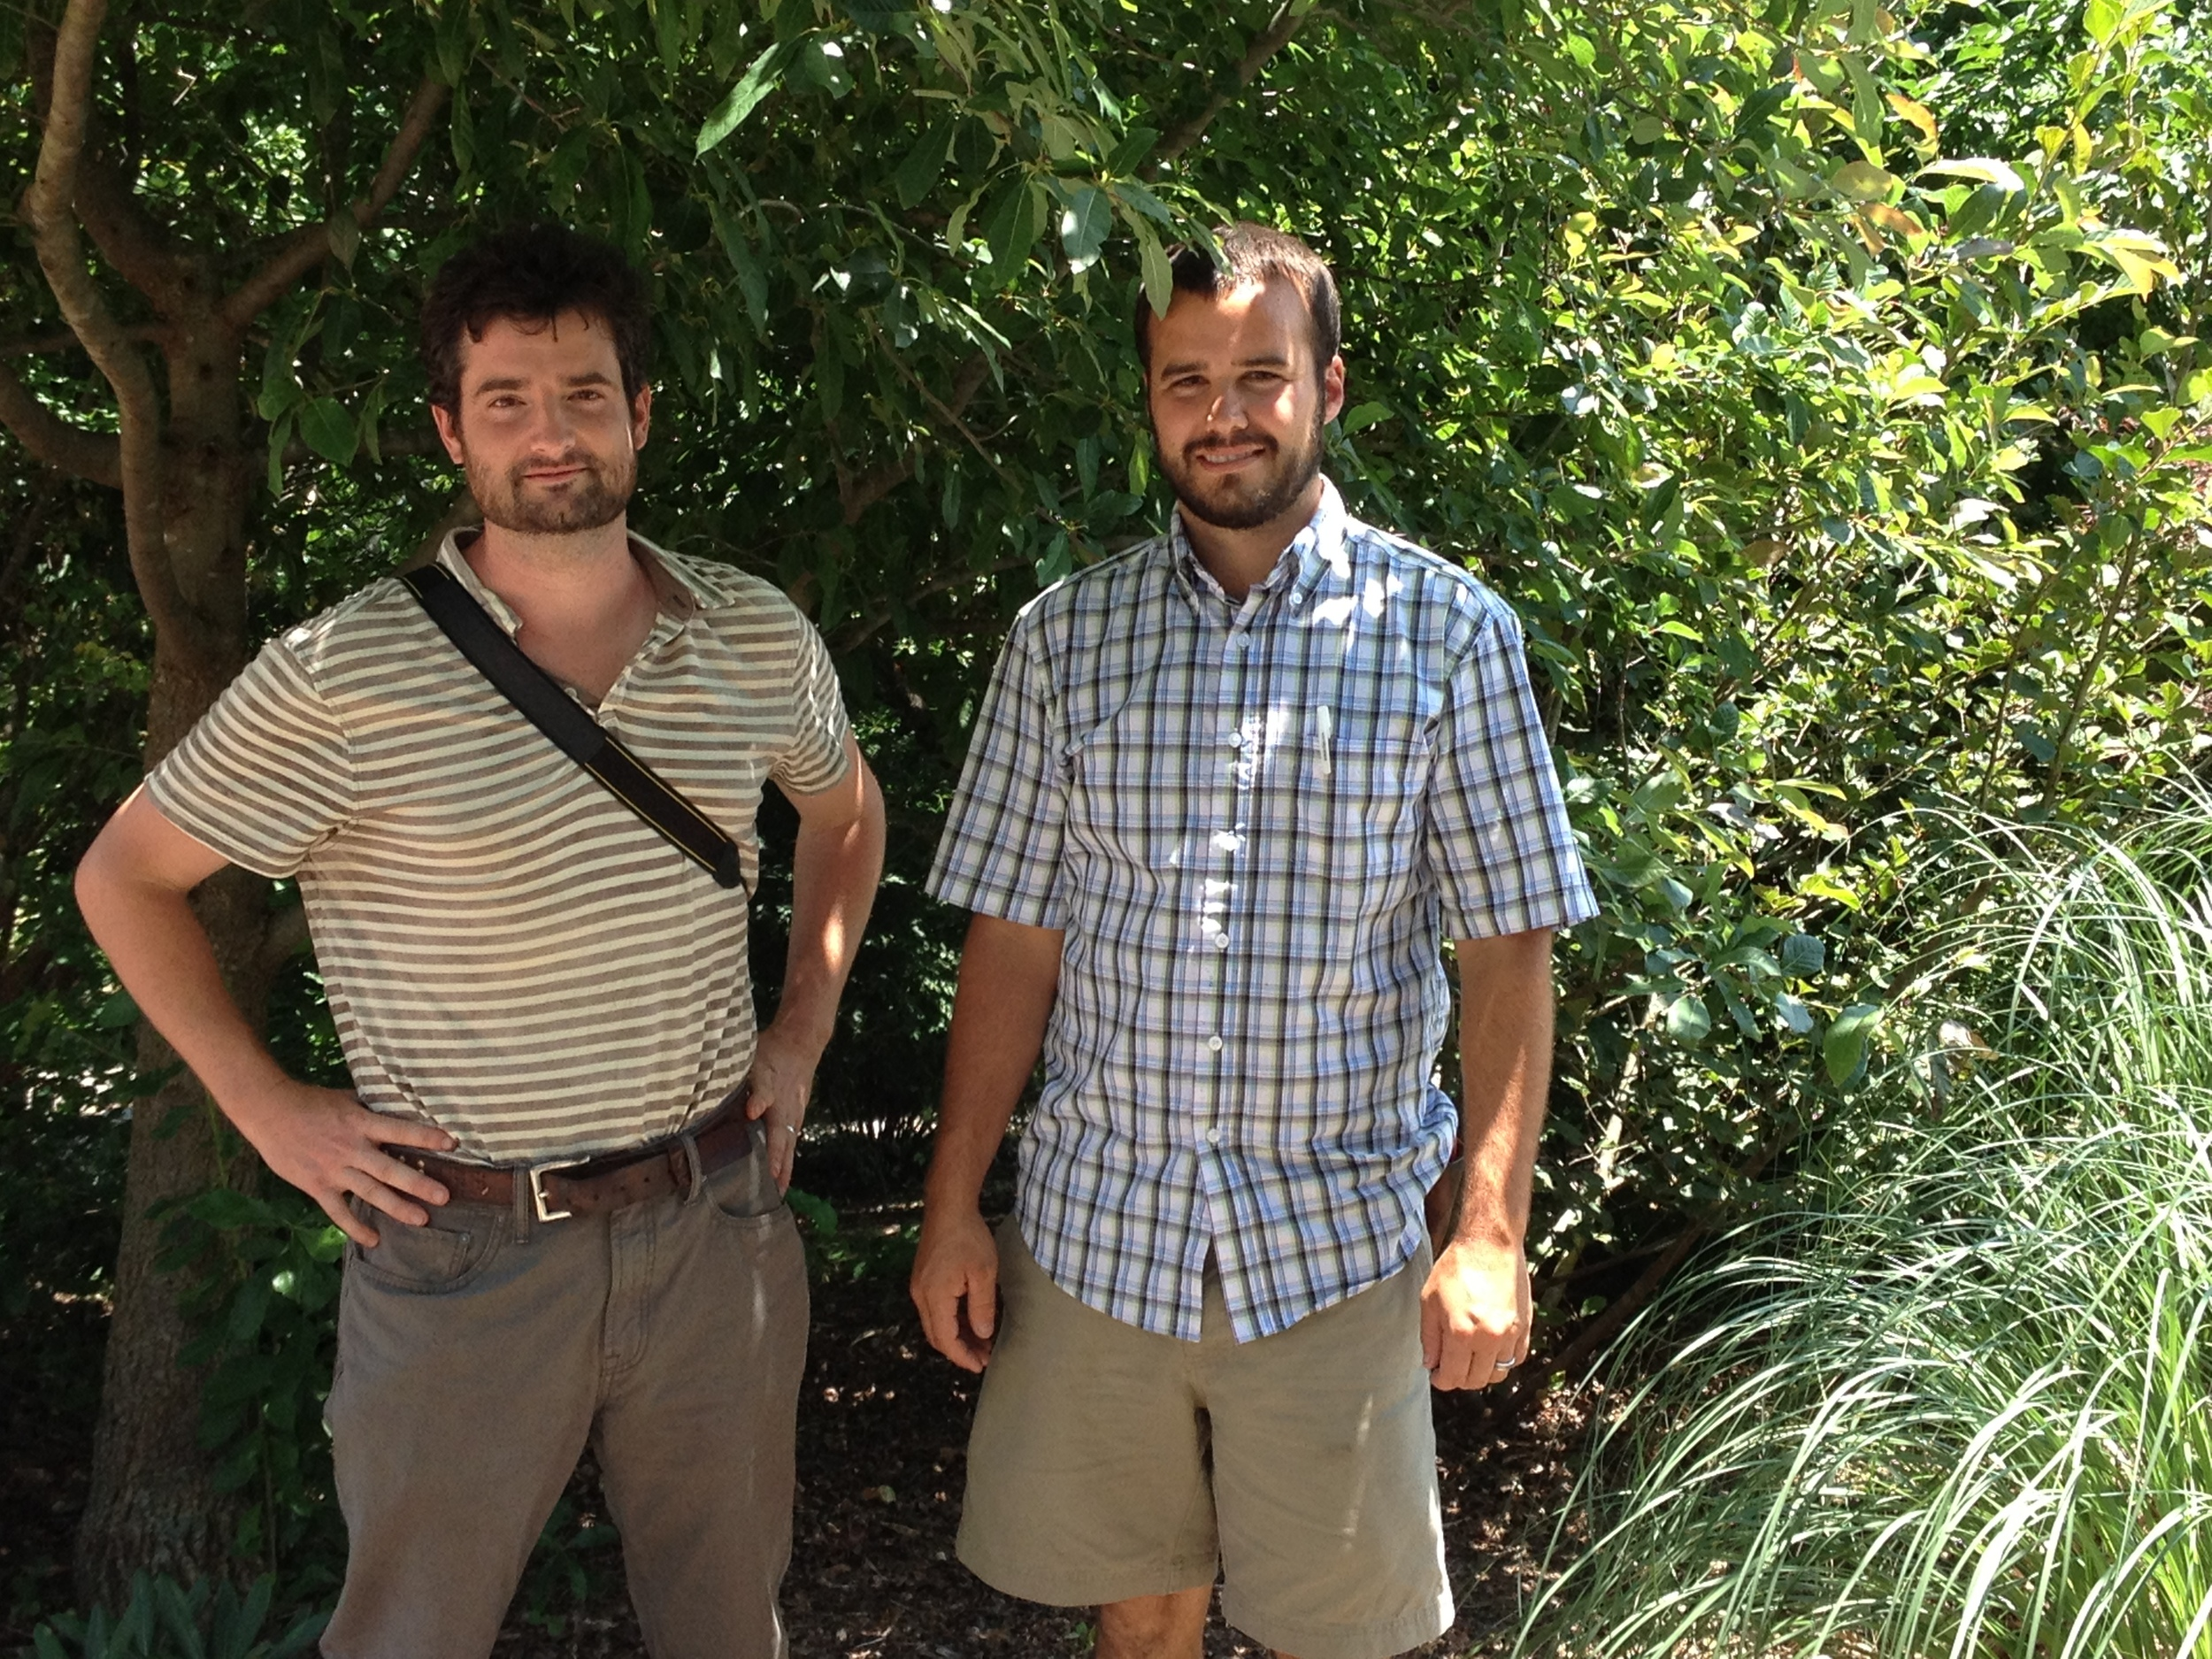 Ethan Kauffman and Erik Healy from Moore Farms Botanical Garden.